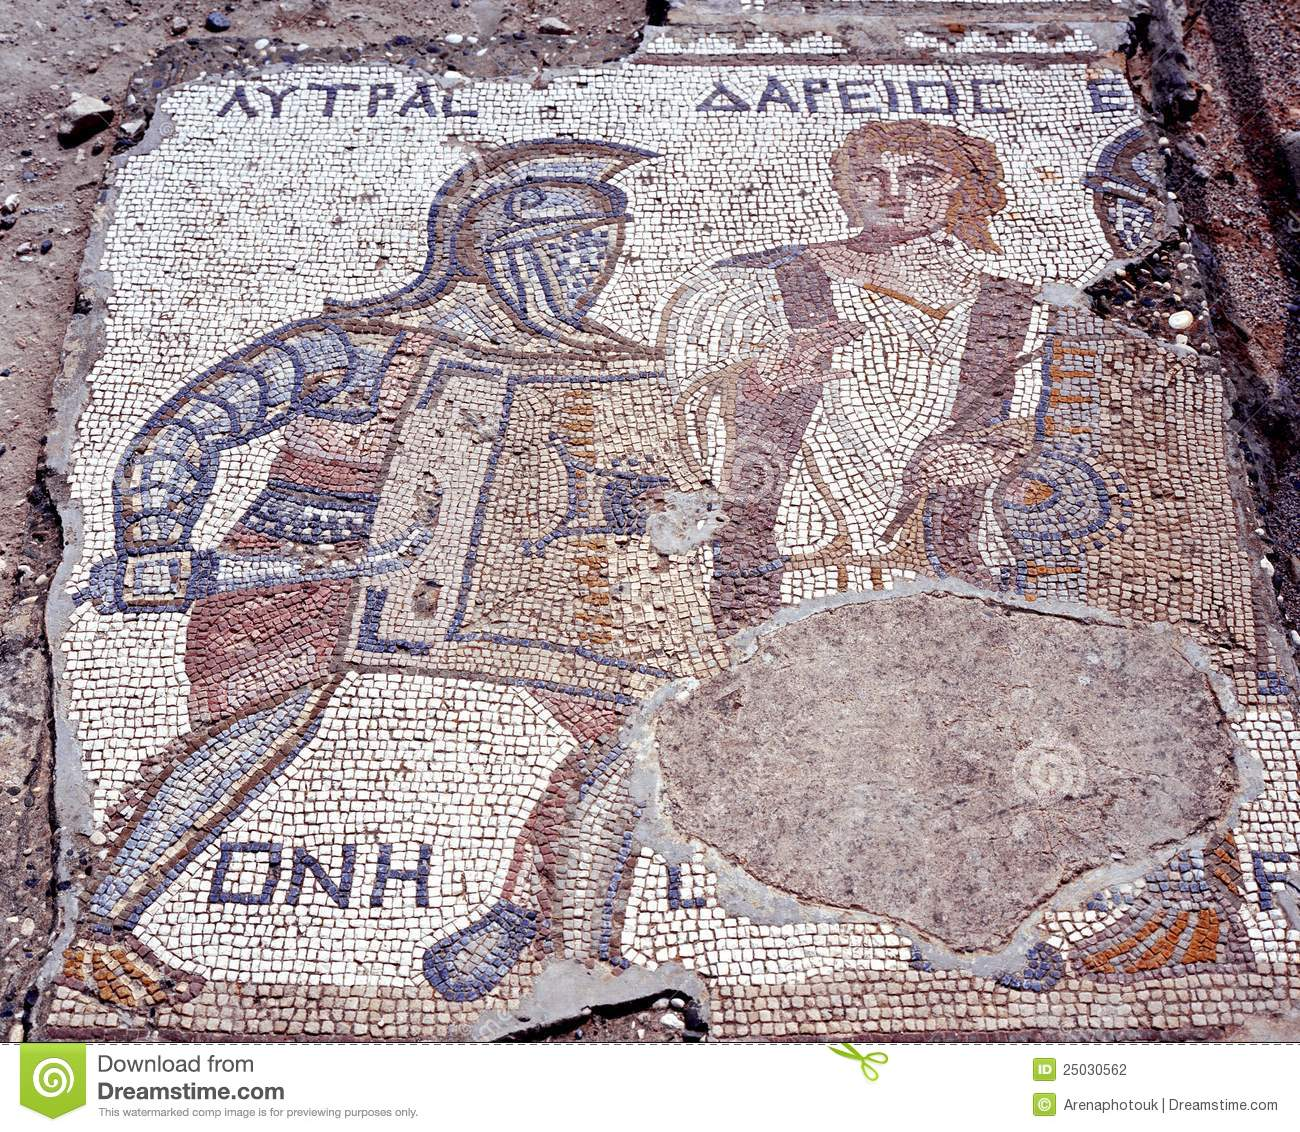 Gladiator Lytras Mosaic Kourion Cyprus Stock Photo